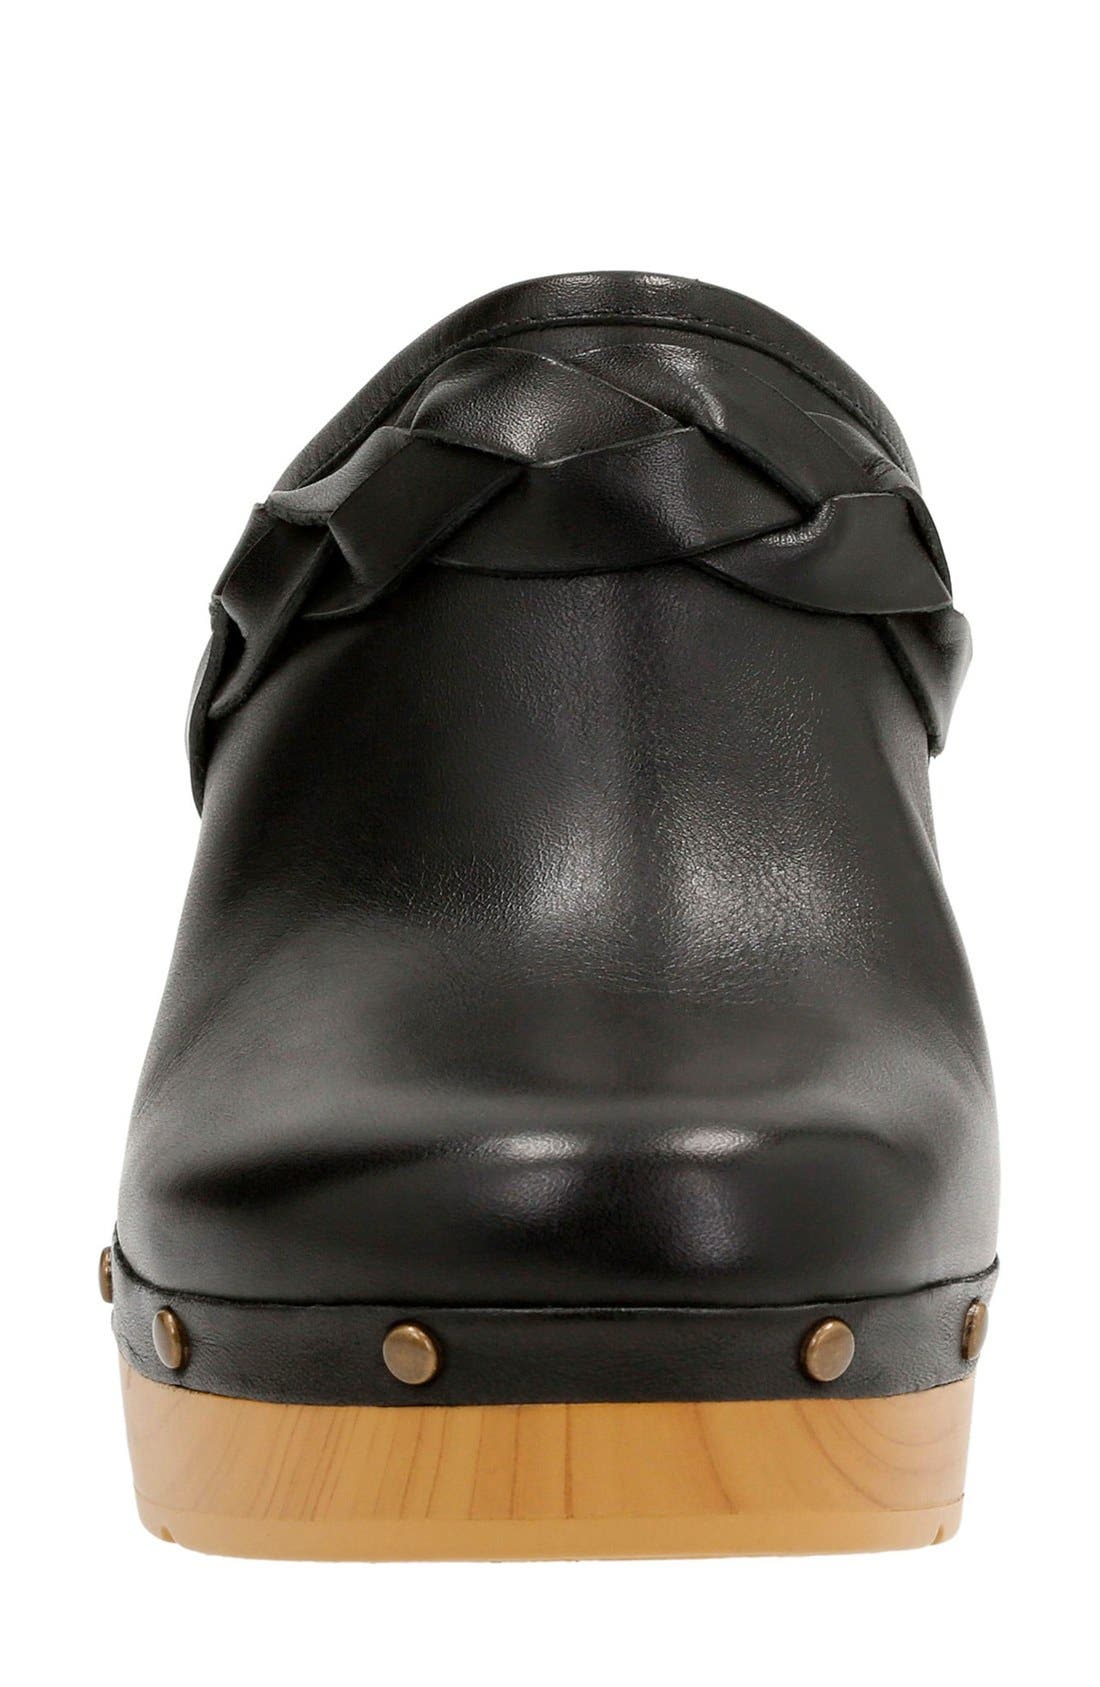 Ledella Meg Platform Clog,                             Alternate thumbnail 3, color,                             Black Leather